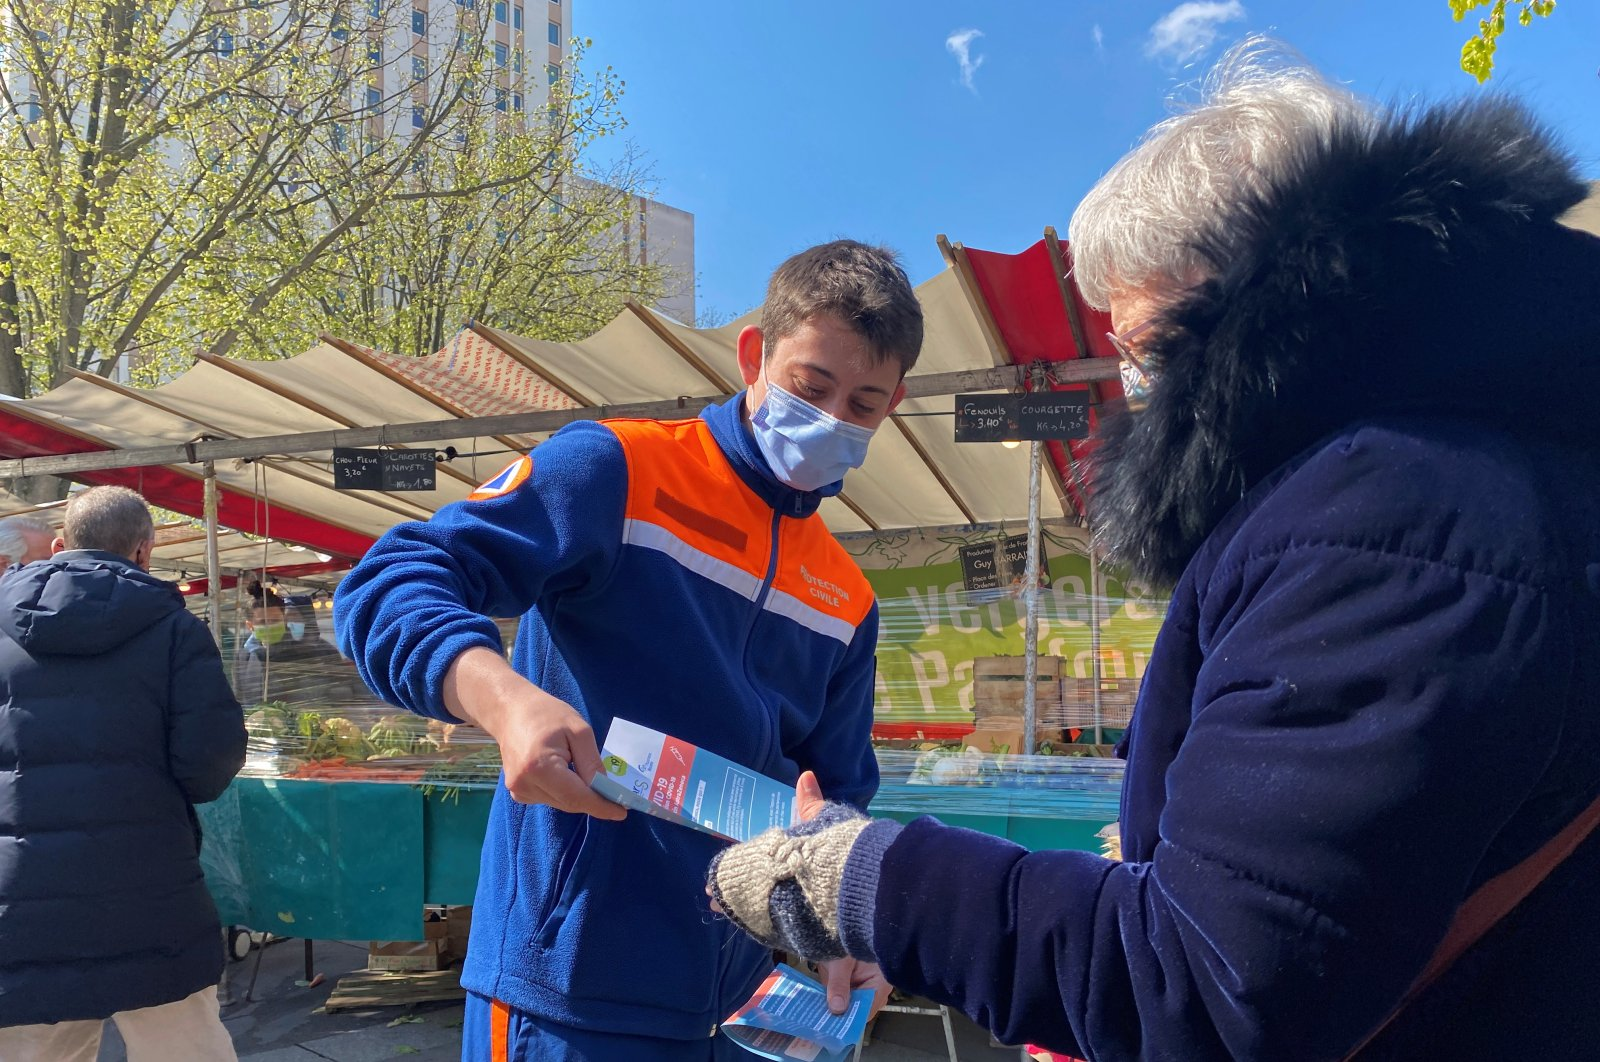 """Volunteers from the French """"Protection Civile"""" association hand out leaflets at a fresh producer market to try to persuade Parisians over 55 to take the AstraZeneca vaccine, amid the coronavirus disease (COVID-19) pandemic, Paris, France, April 16, 2021. (Reuters Photo)"""